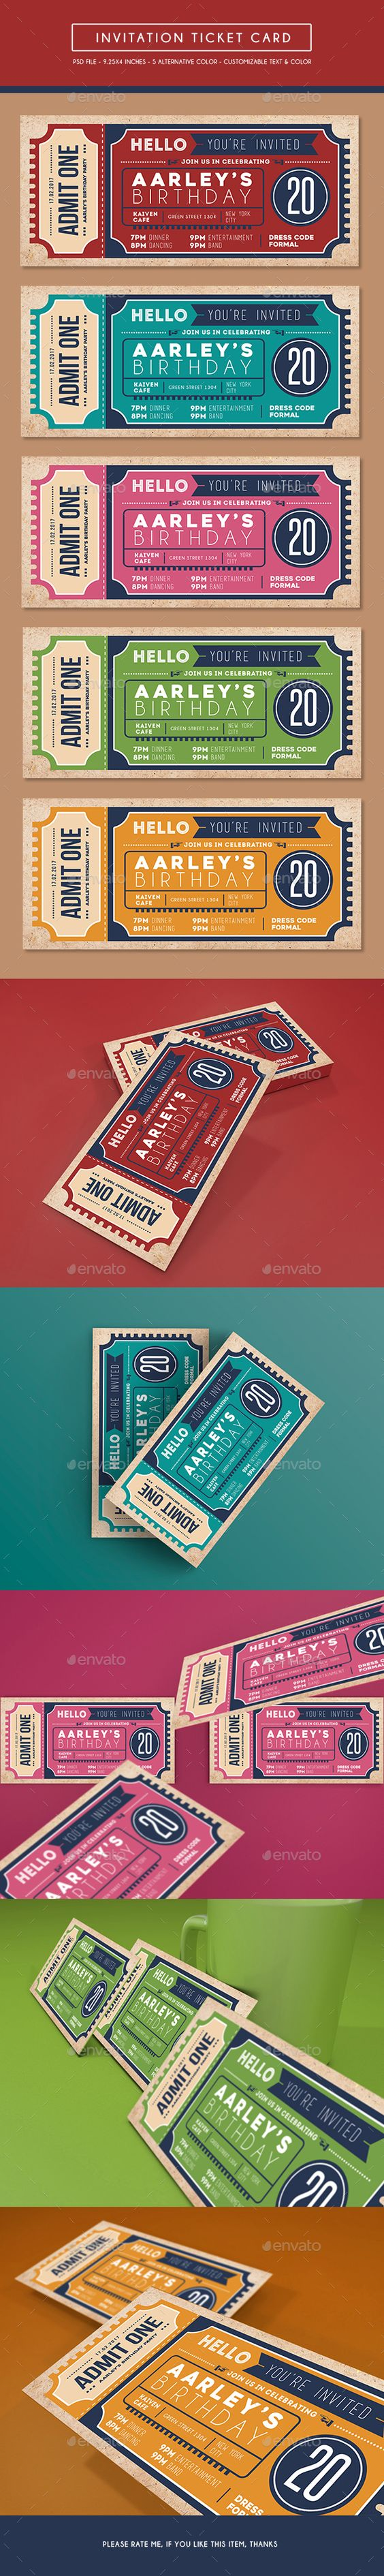 Concert Ticket Invitation Template Pind3Rrrr On Source Material  Pinterest  Typography .